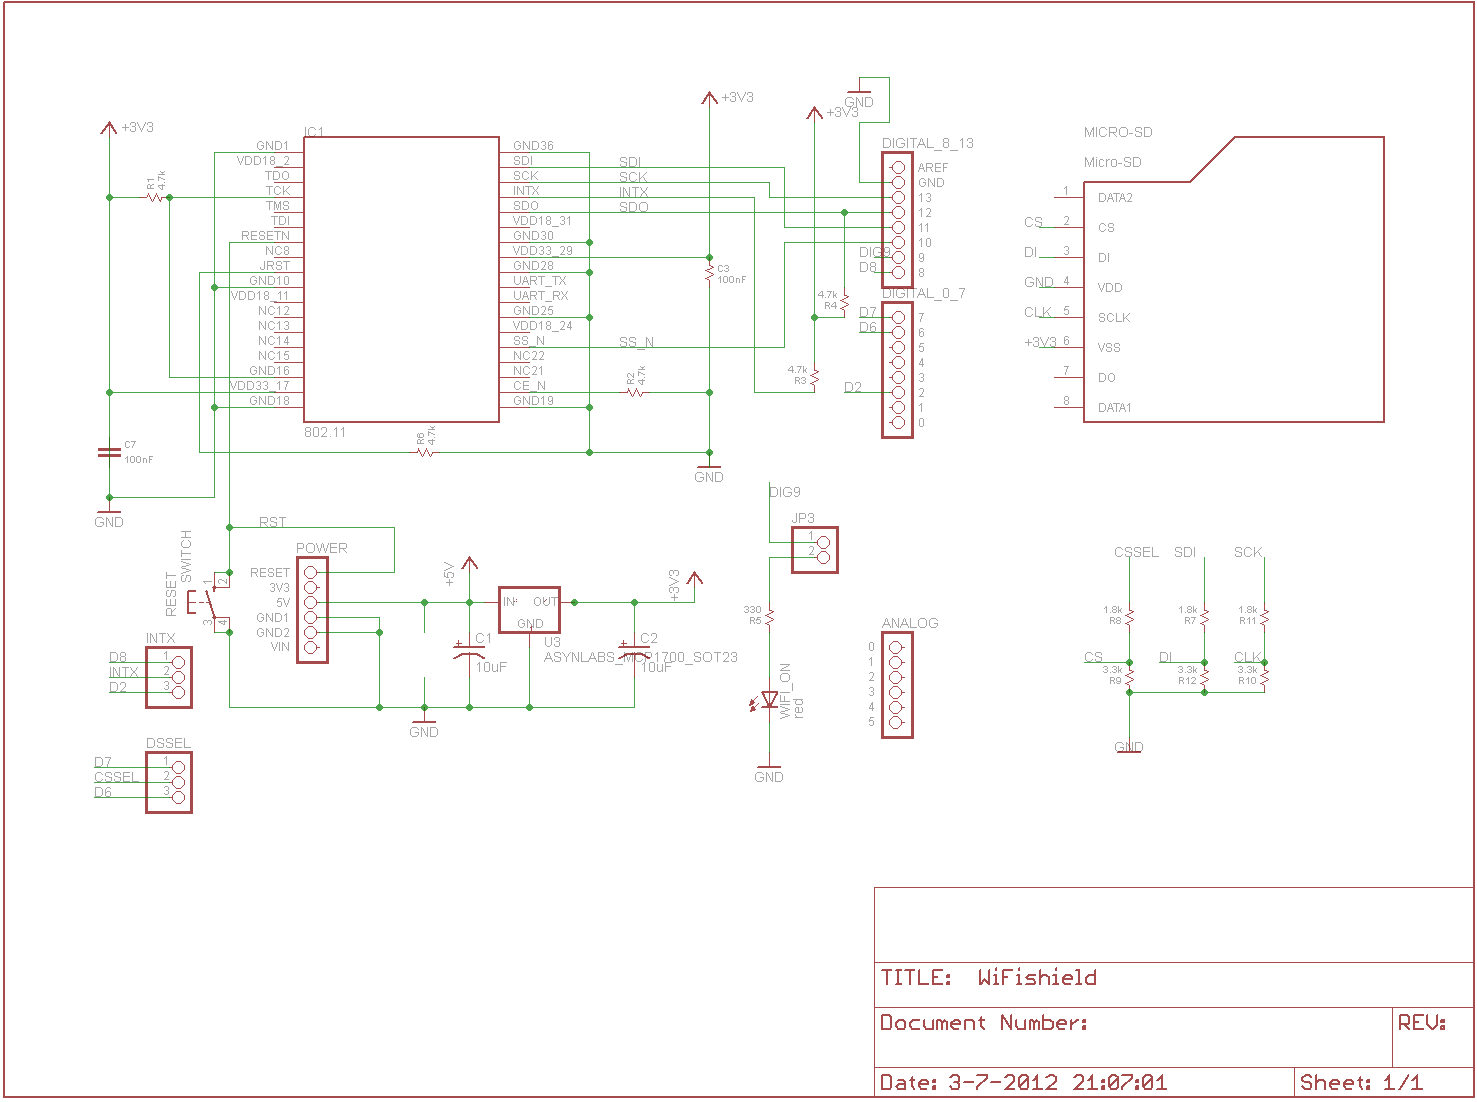 wifi shield schematic